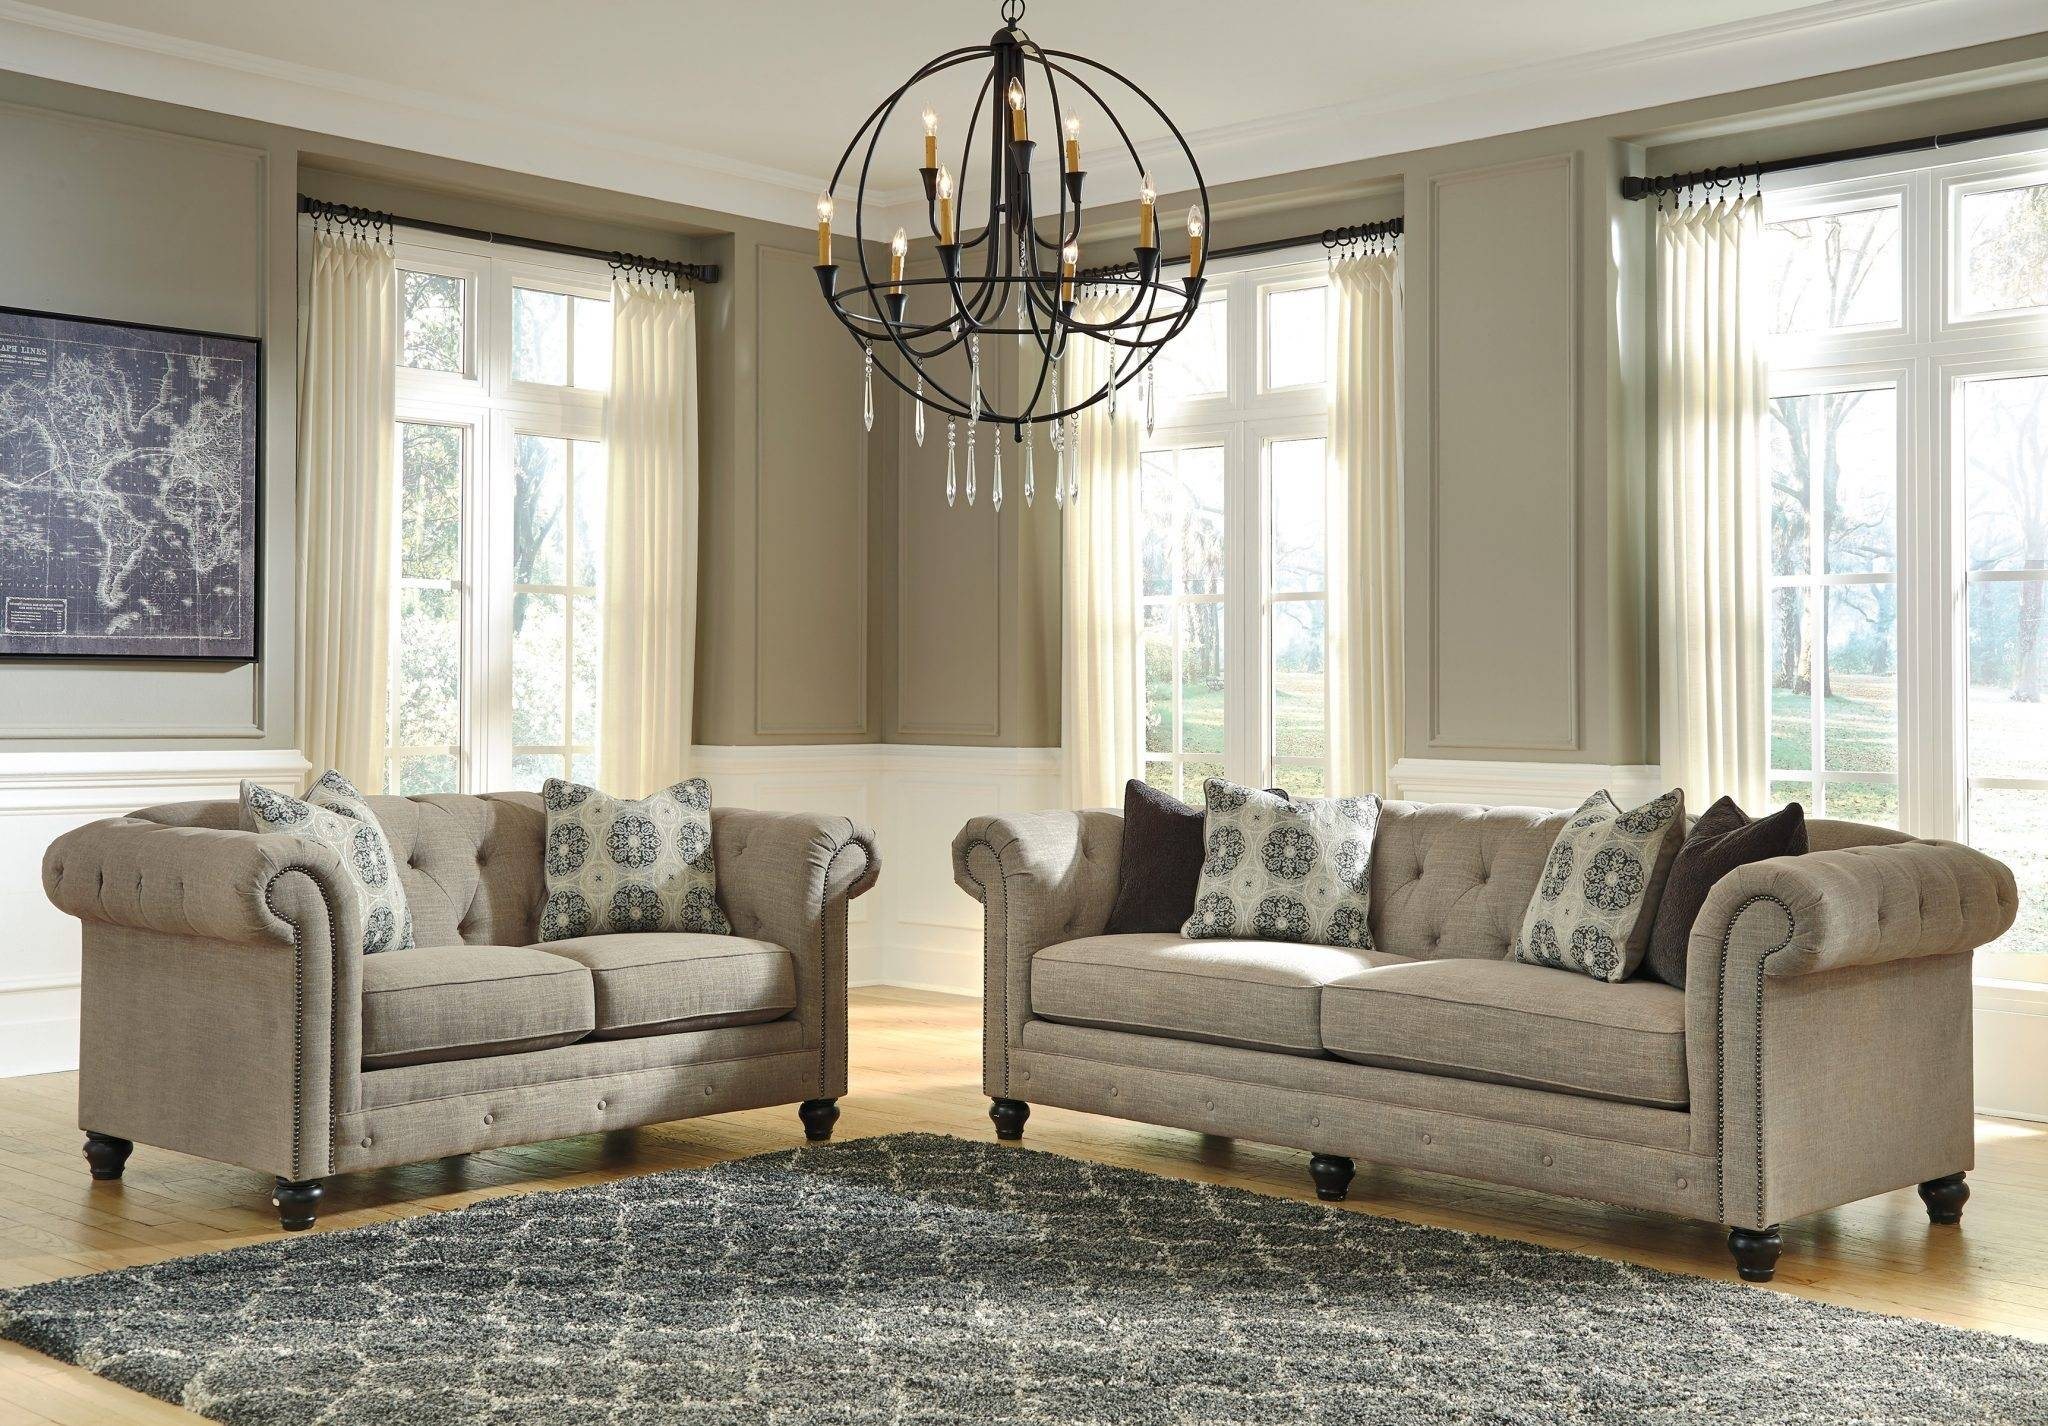 Best Furniture Mentor Oh: Furniture Store – Ashley Furniture Within Ashley Tufted Sofa (Image 13 of 30)